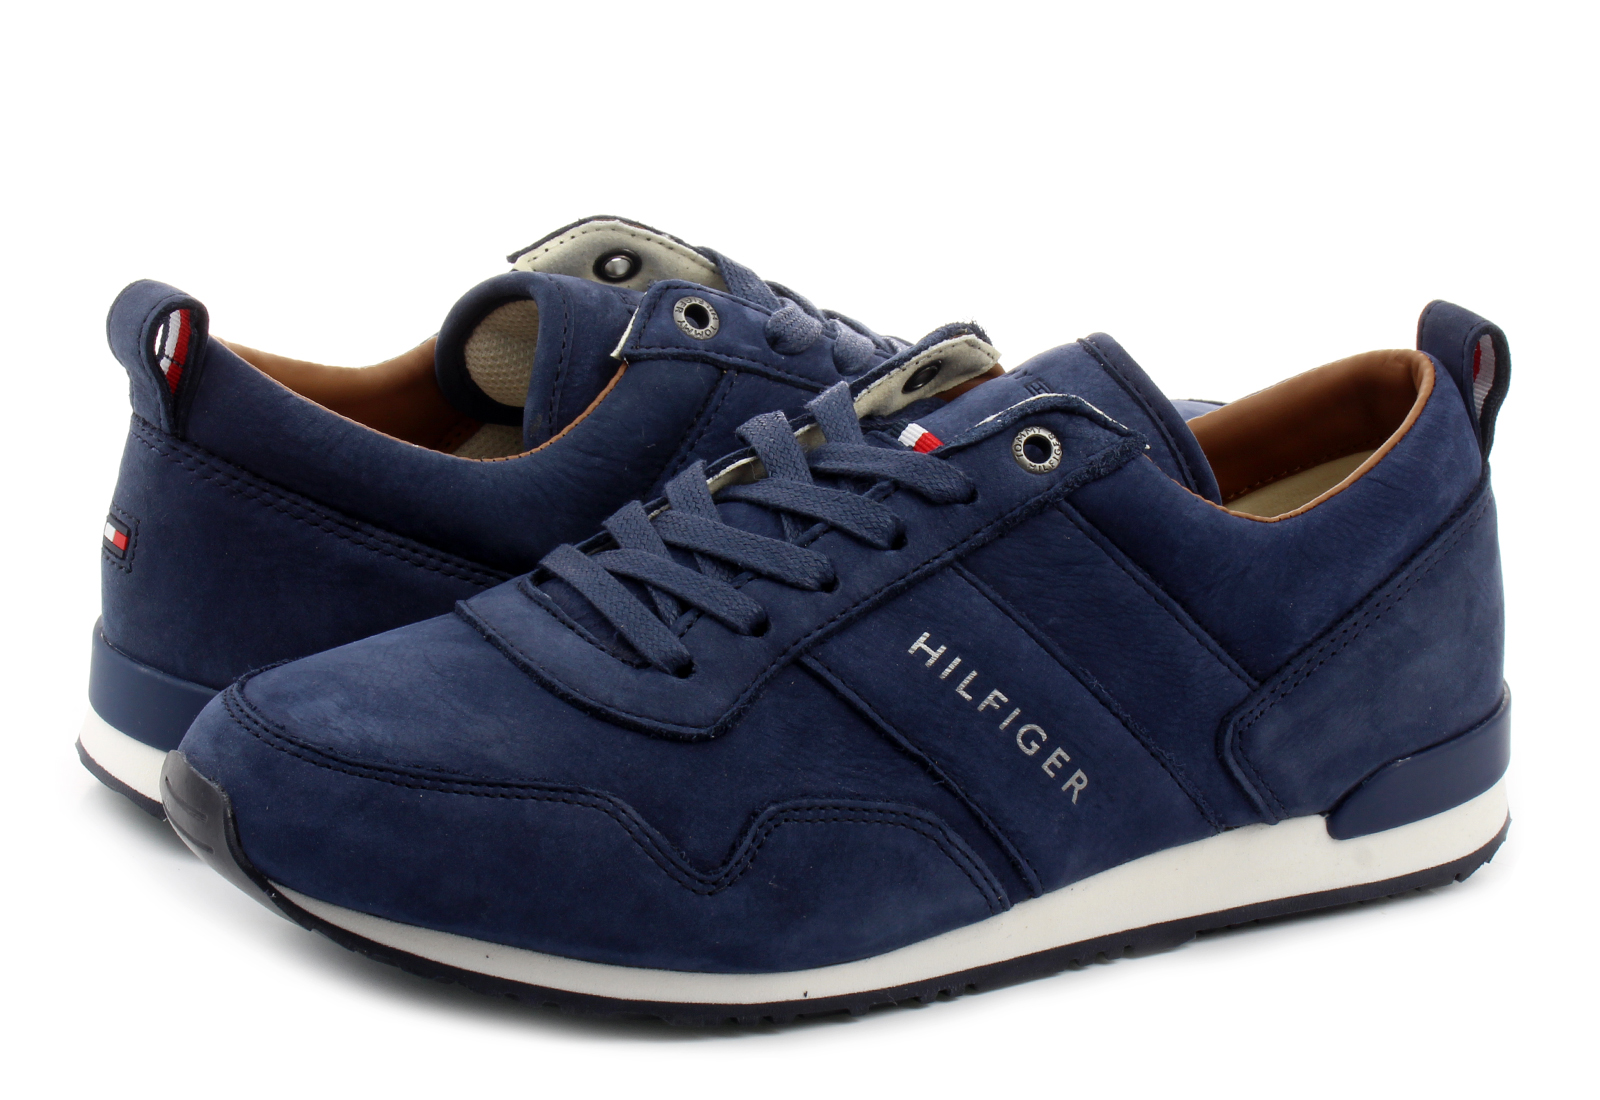 Tommy Hilfiger Topánky - Maxwell 11 - 18S-1437-014 - Tenisky ... ea770df8e3c